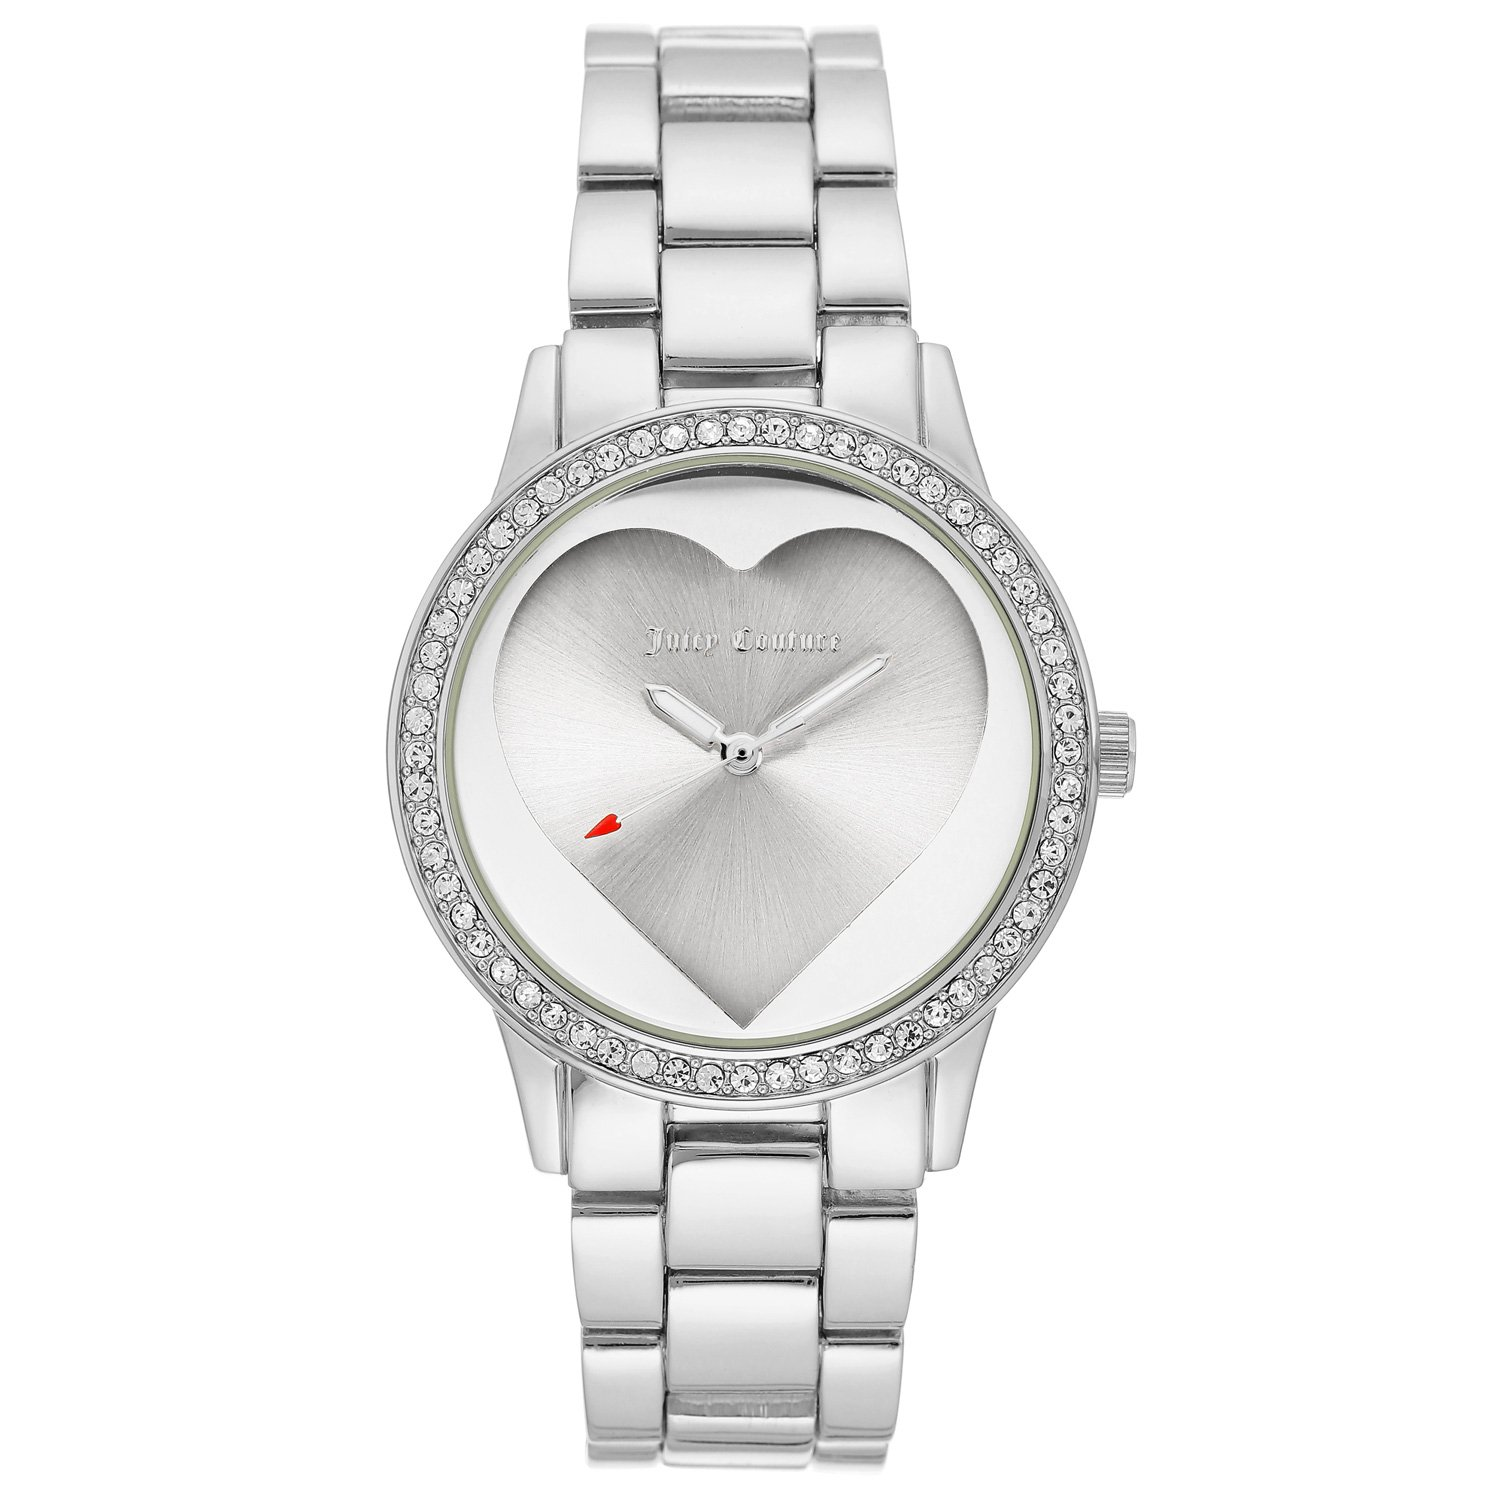 Juicy Couture Women's Watch Silver JC/1120SVSV